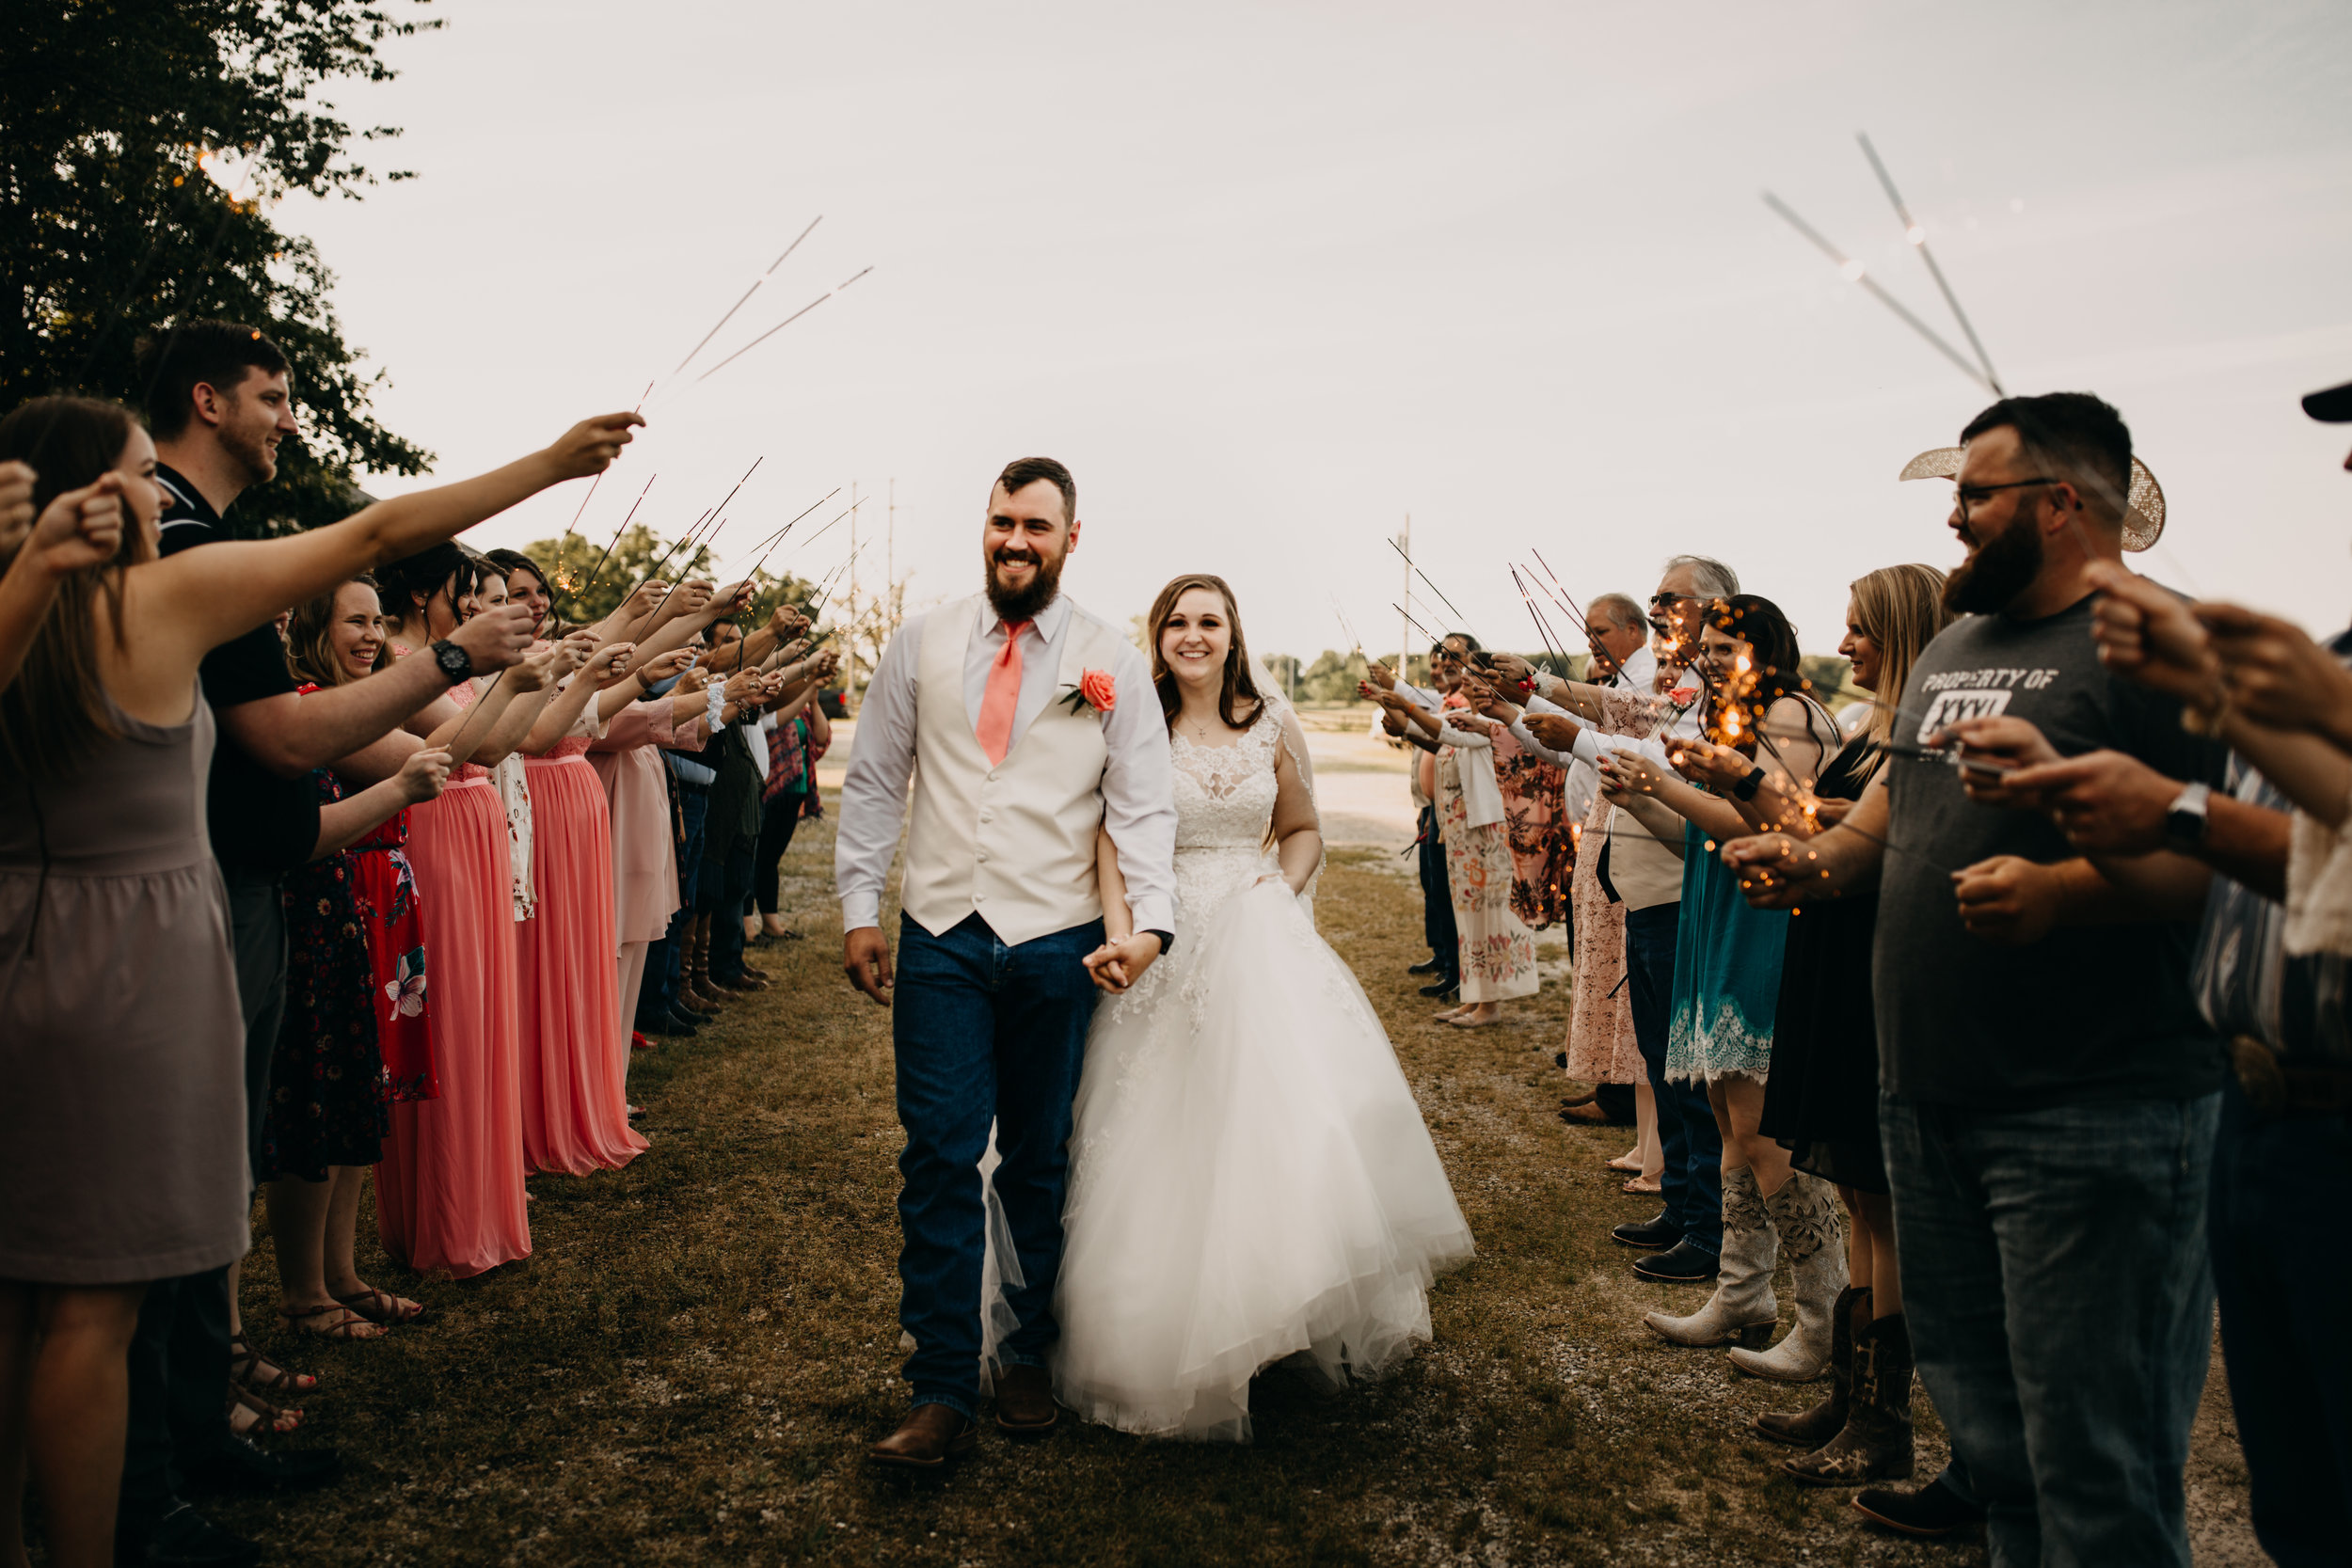 bride and groom sparkler exit from wedding